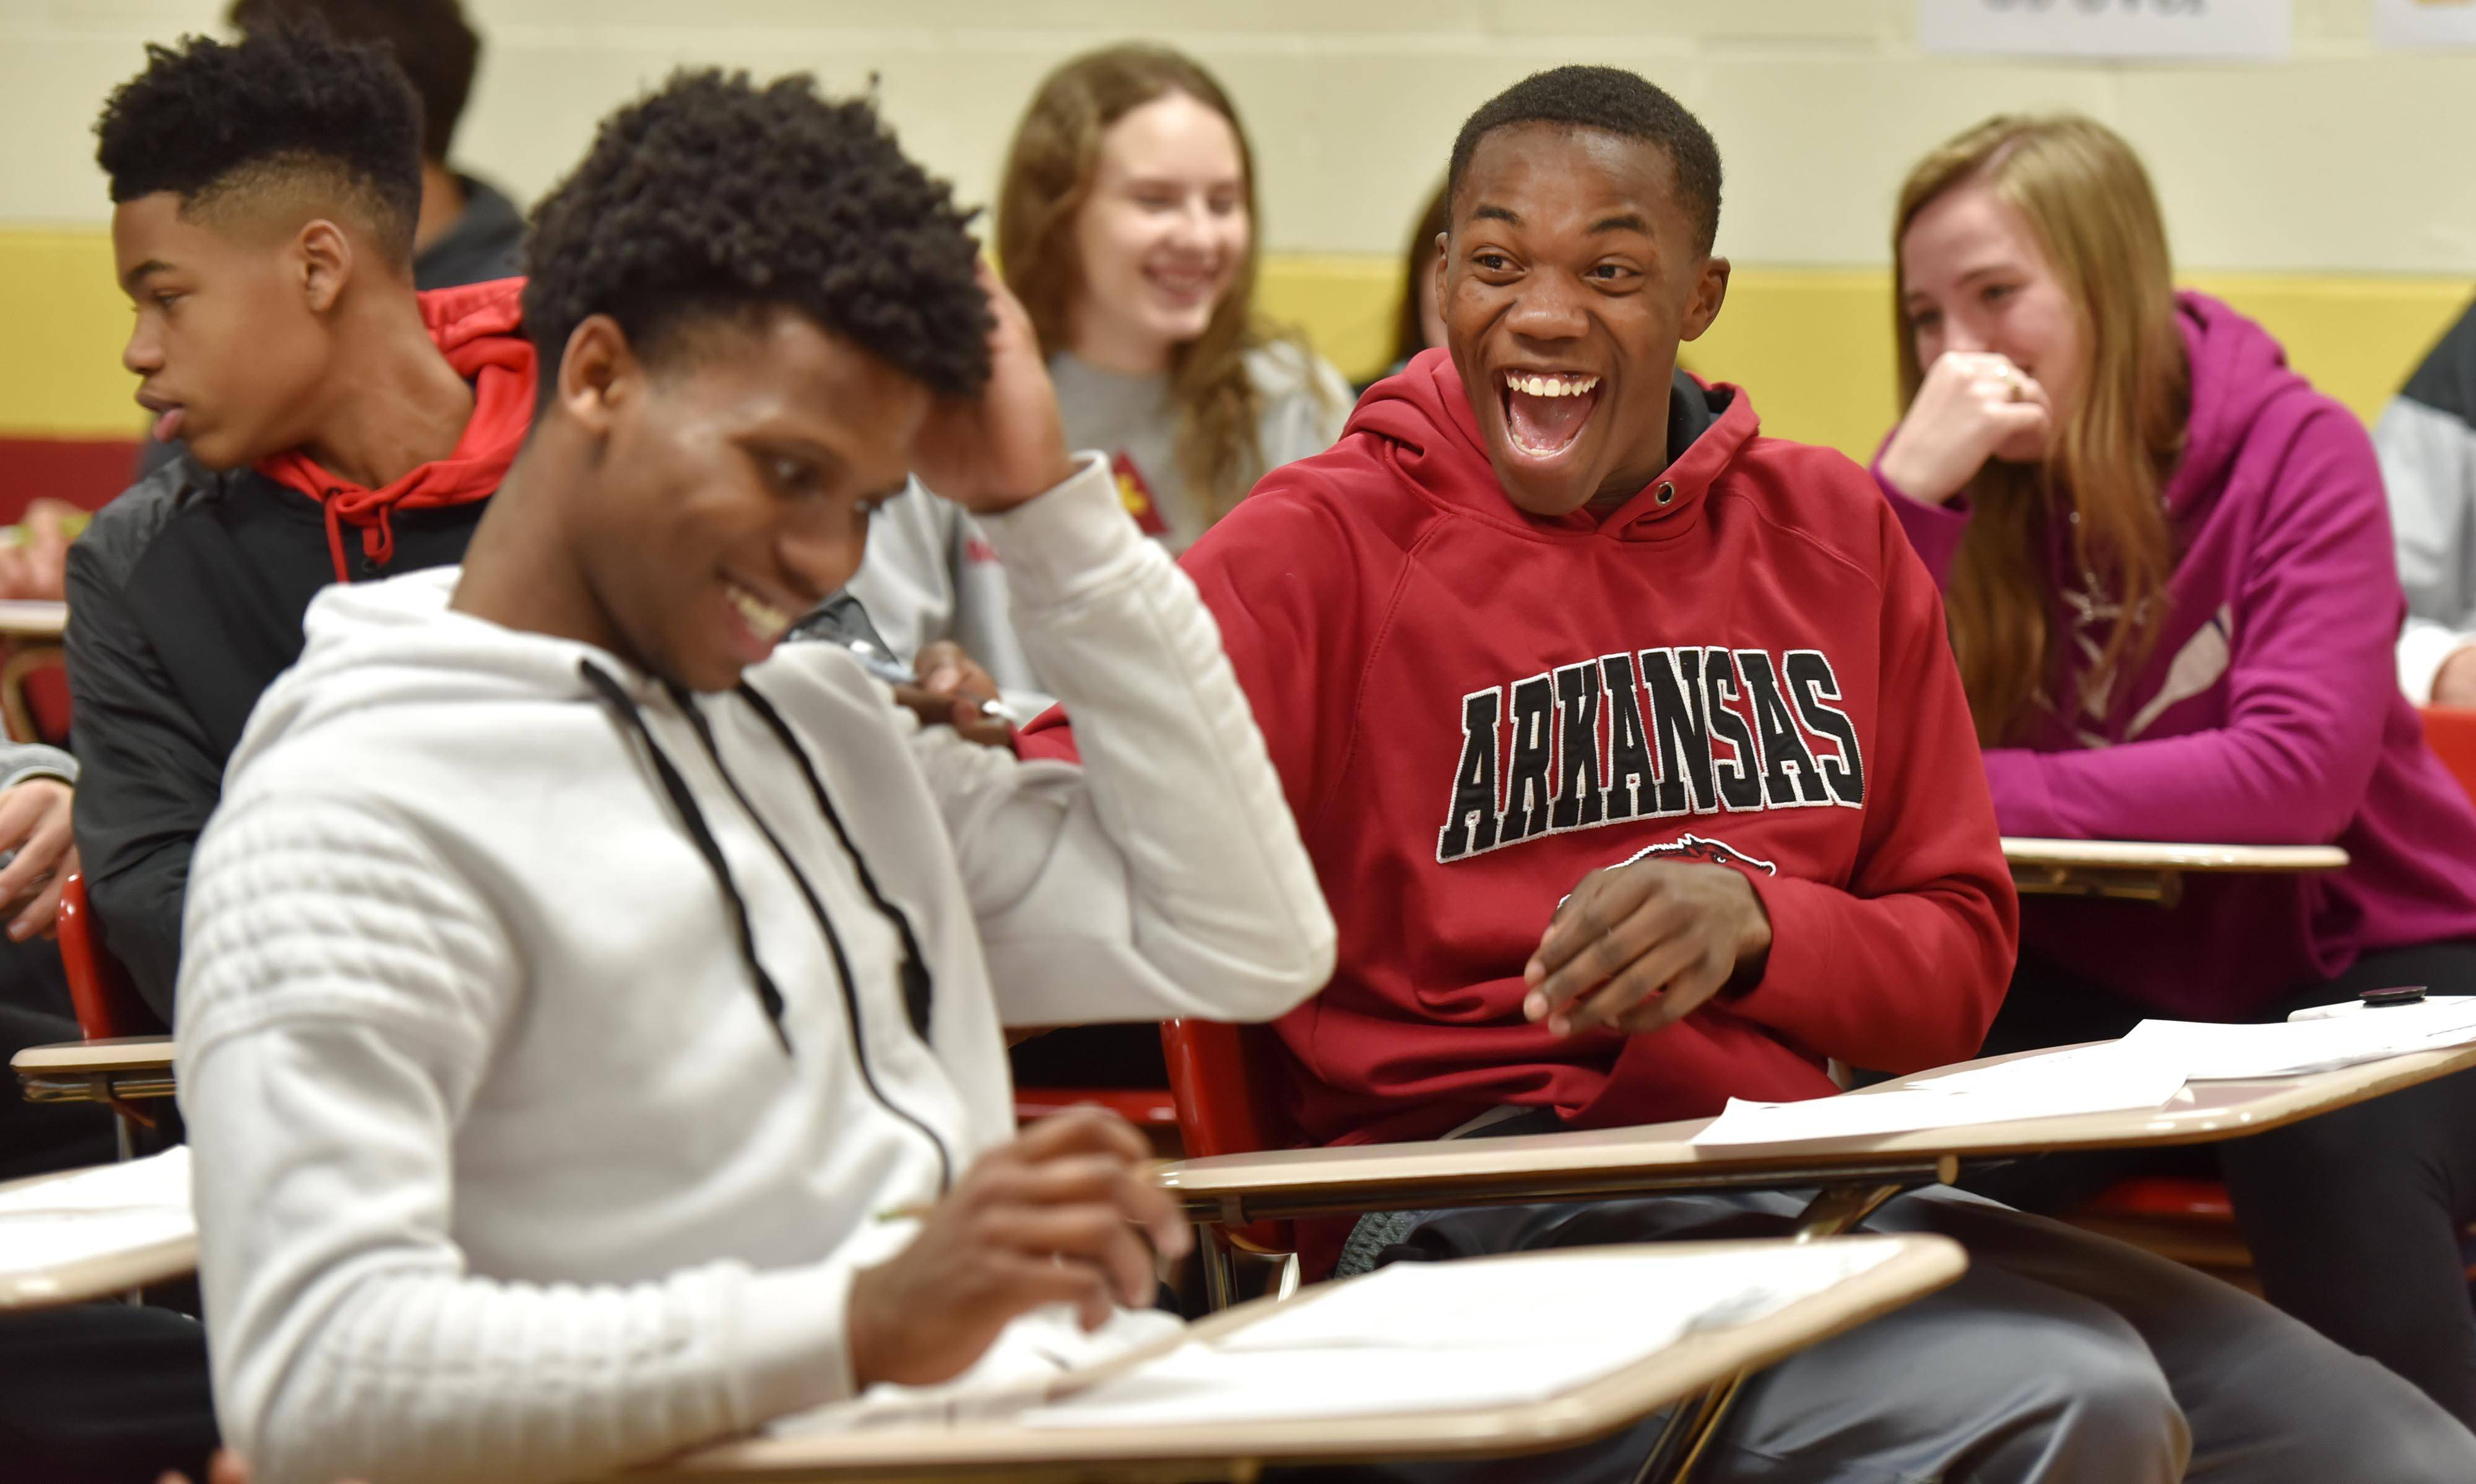 Schaumburg High School boys basketball team members Heze Trotter, right, and Mike Hodges laugh as they relax and share ideas for their letters to U.S. service members. The team listened to U.S. Army Sgt. Ramiro Sanchez, who is stationed in the area. He spoke about the joy of receiving letters while on duty.